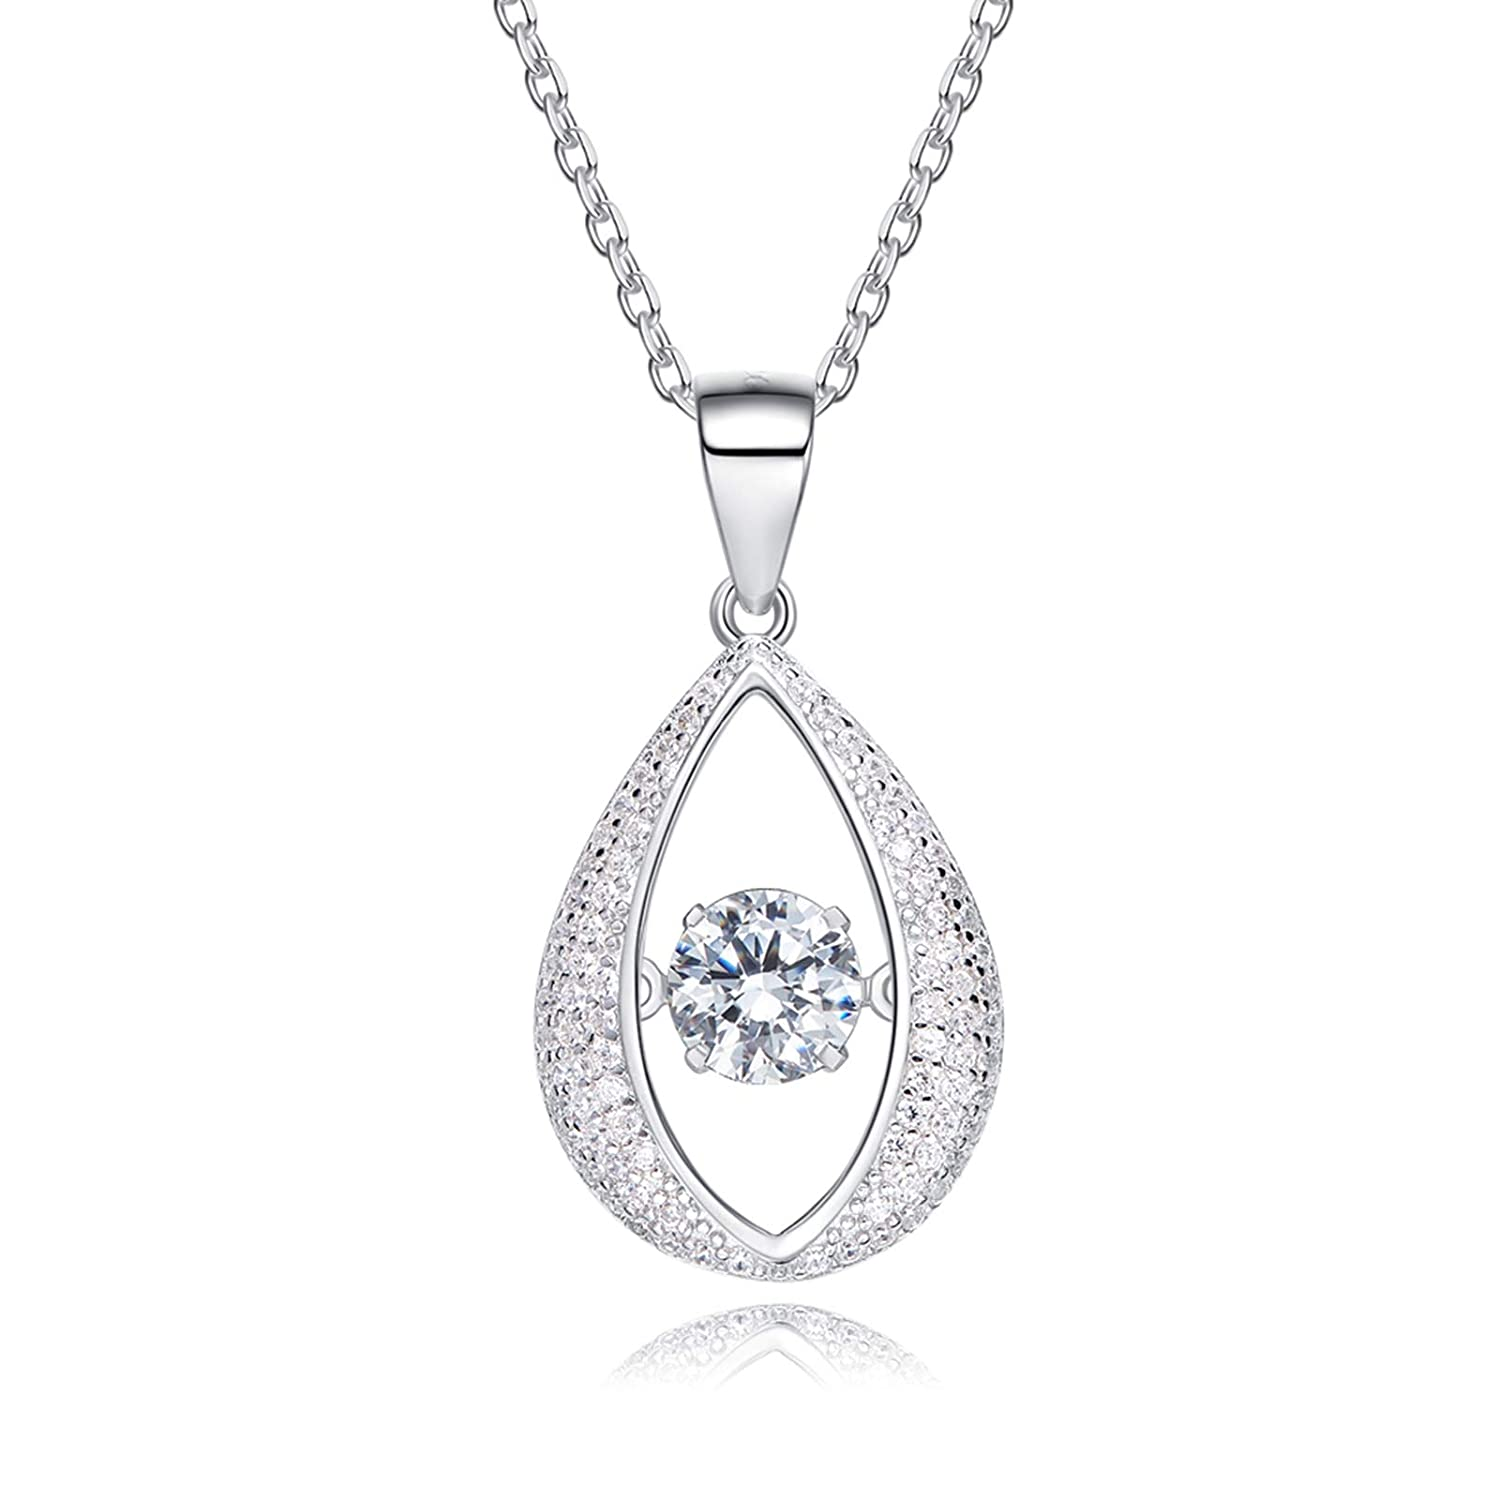 Aienid Silver Necklaces for Women 925 Element Crystal Teardrop Pendant Necklace Silver